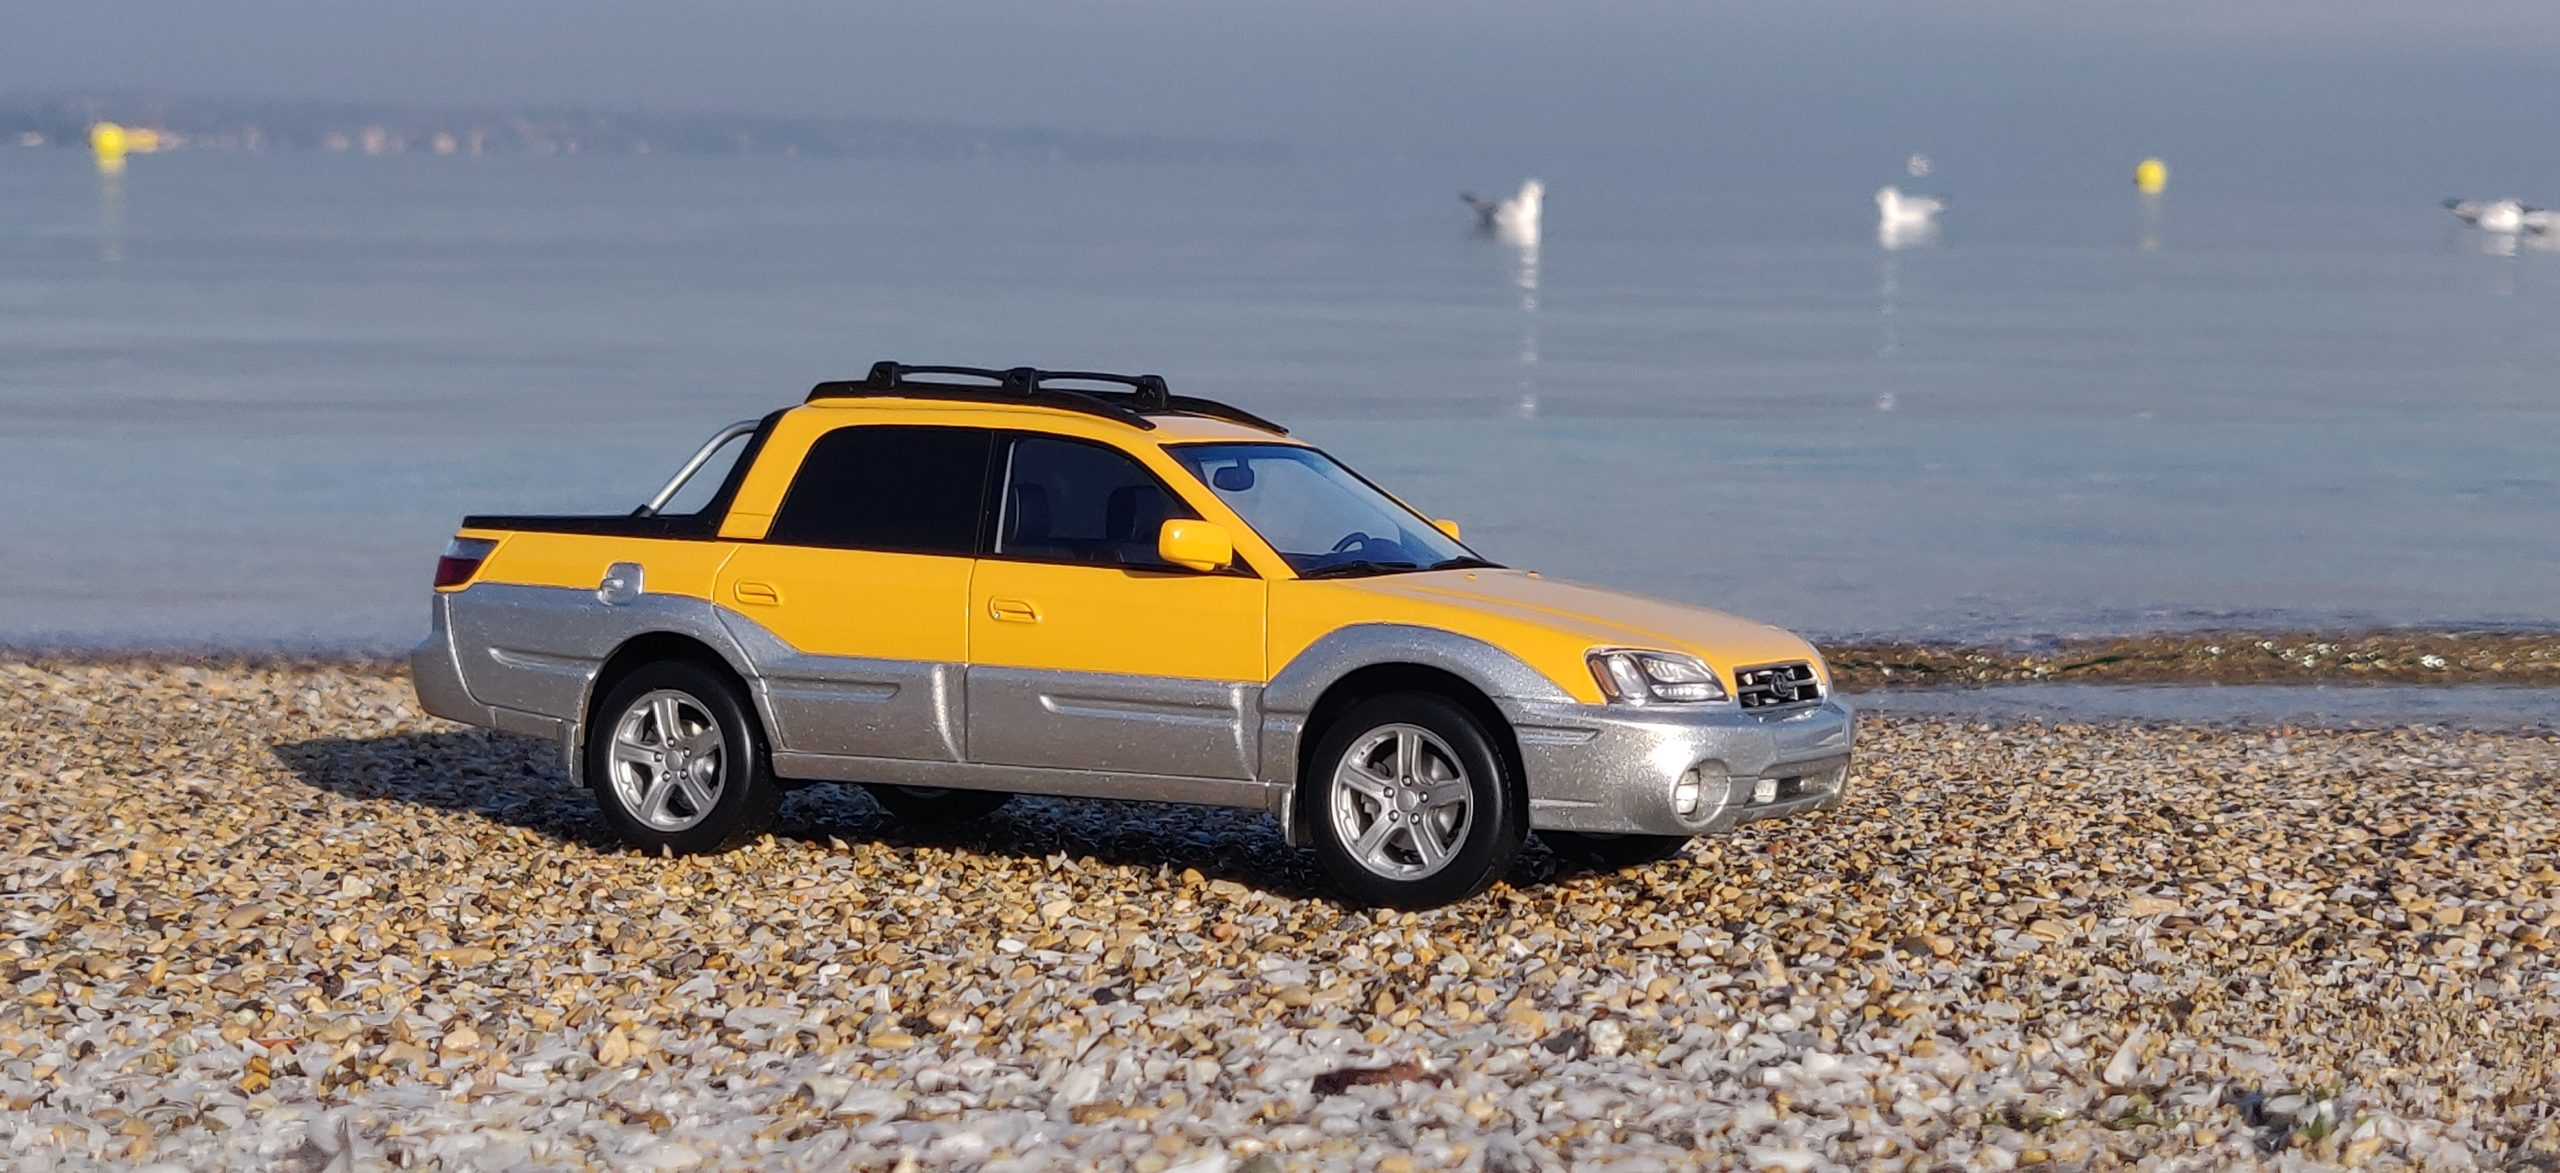 Subaru Baja DNA Collectibles lake Geneva